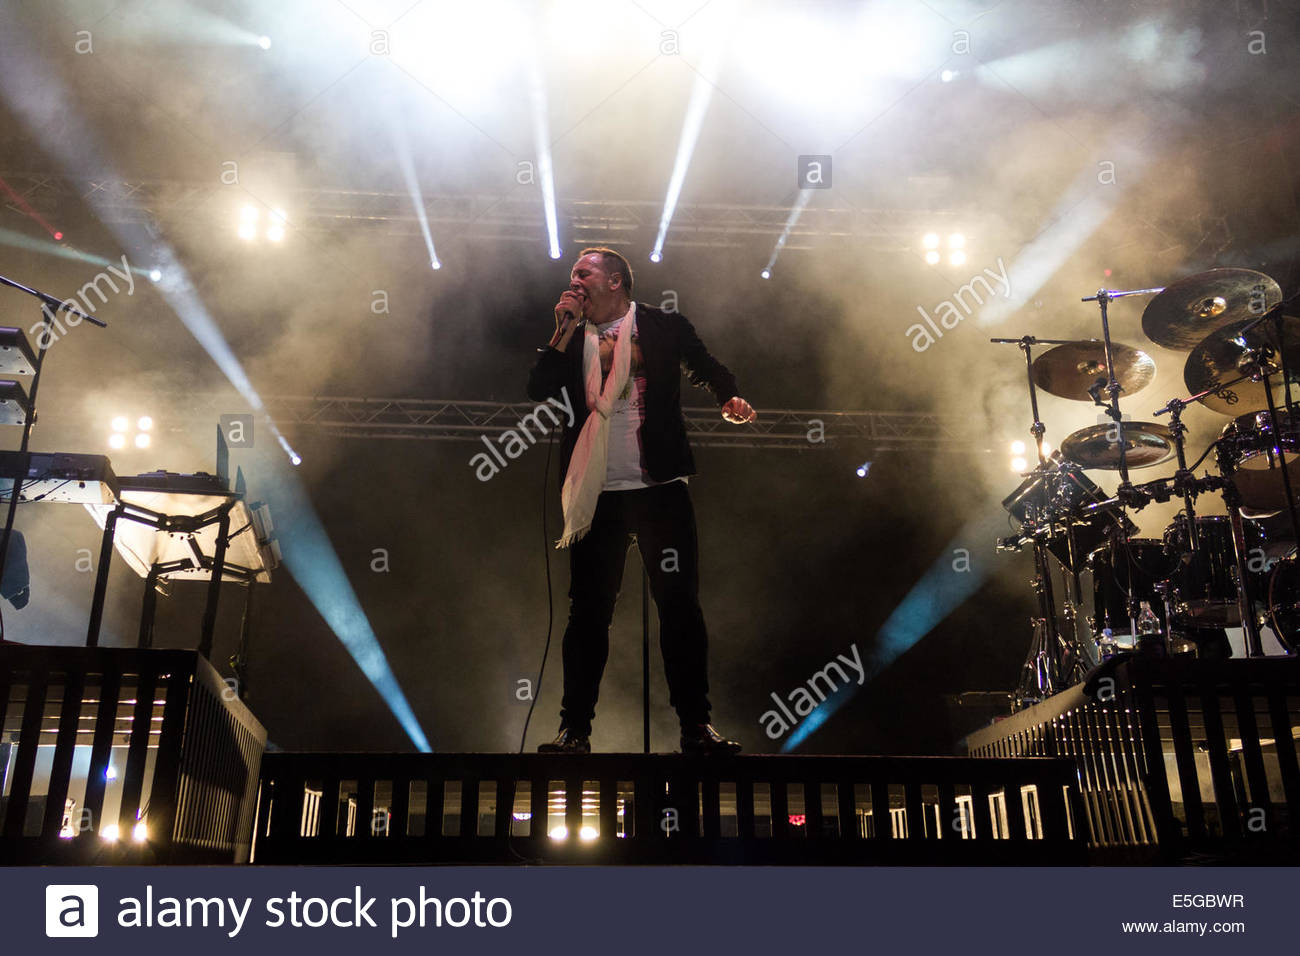 Turin, Italy. 30th July, 2014. Scottish rock band Simple Minds, headed by lead singer Jim Kerr performed live during - Stock Image